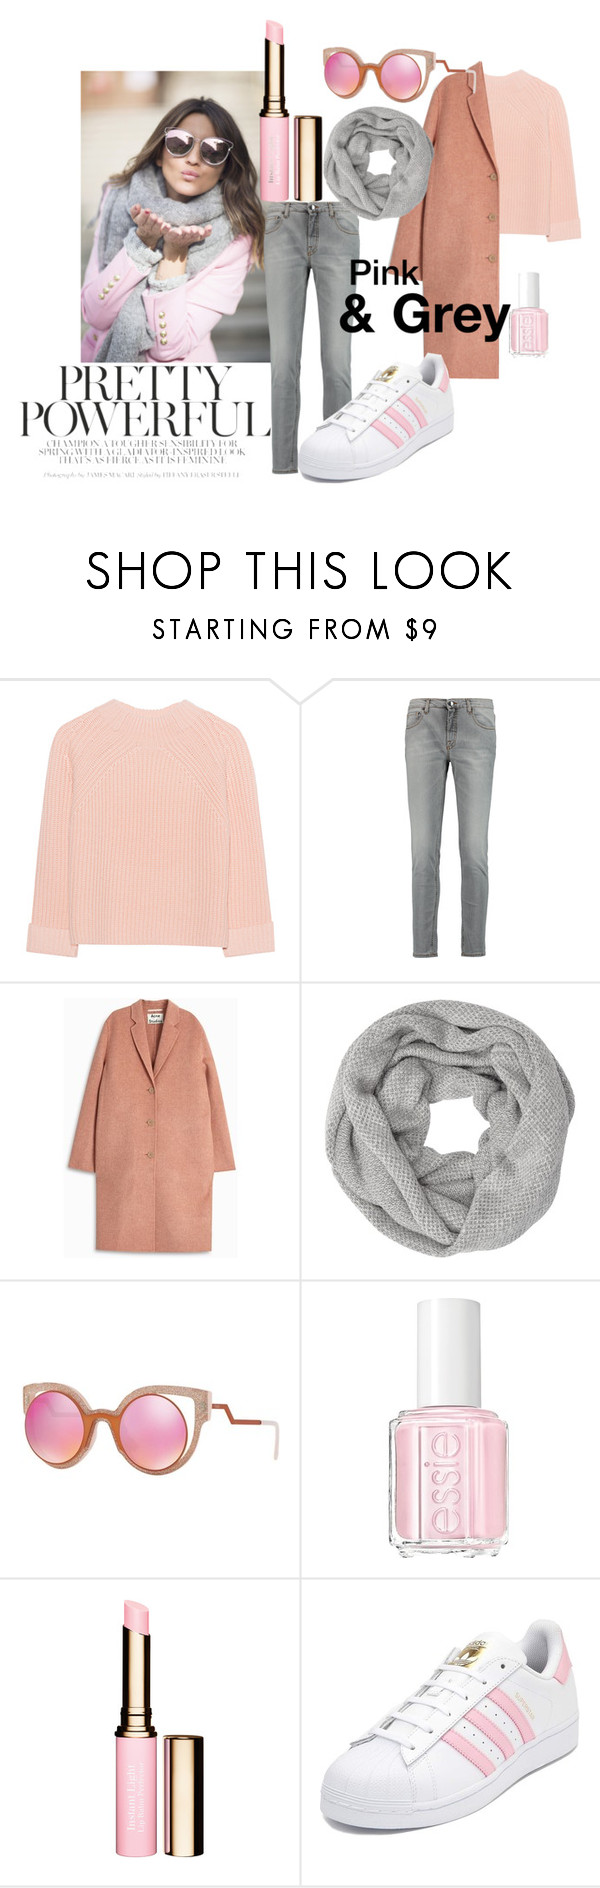 """""""• Pink & Grey Winter Look •"""" by fashion-fields-forever ❤ liked on Polyvore featuring iHeart, dVb Victoria Beckham, Acne Studios, John Lewis, Fendi, Essie and adidas"""